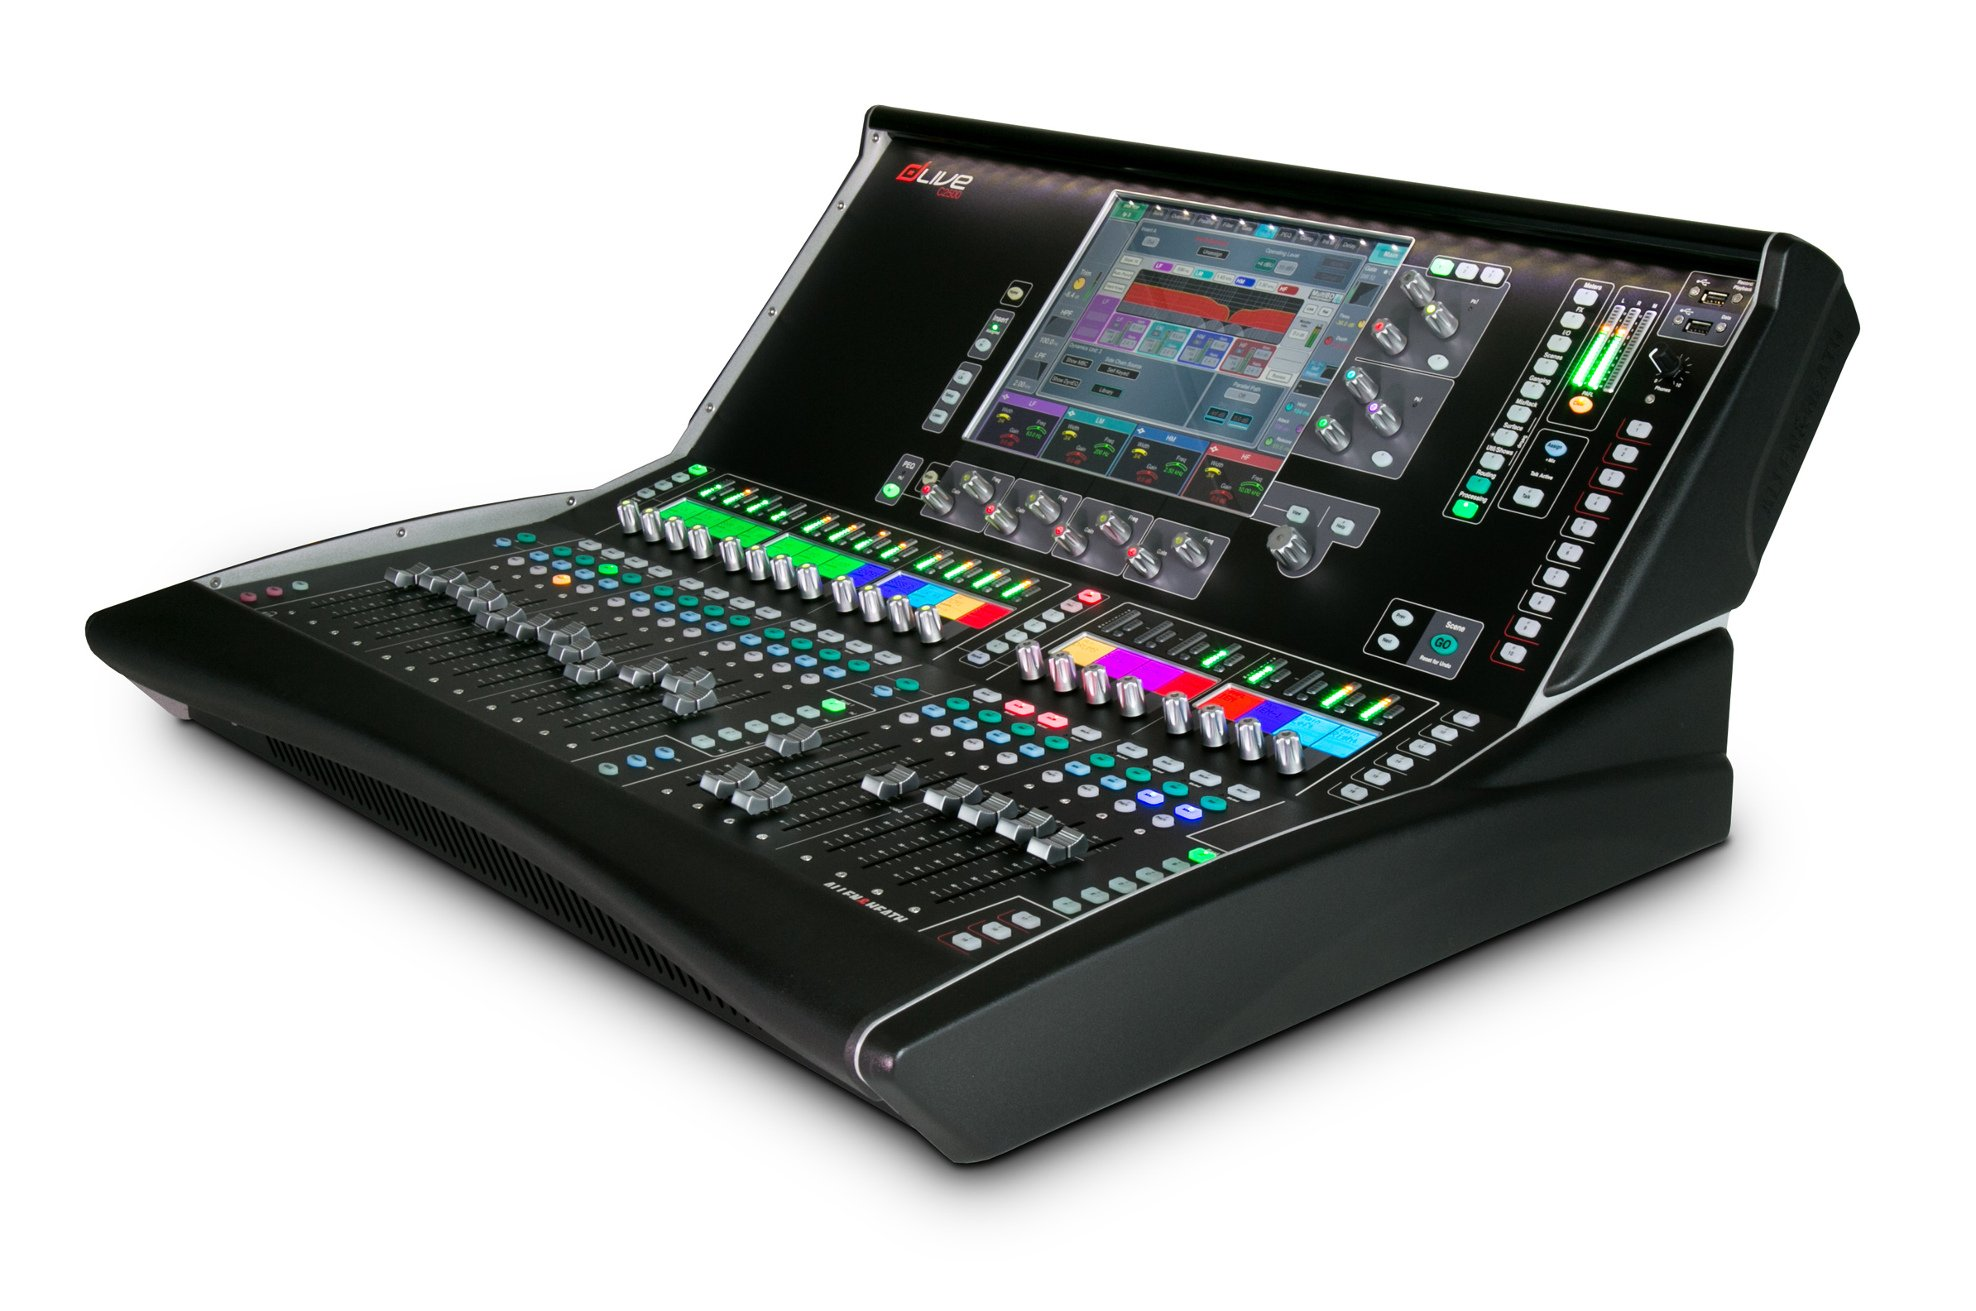 Allen & Heath dLive C2500 dLive C Class 20 Fader Surface DLIVE-DLC25